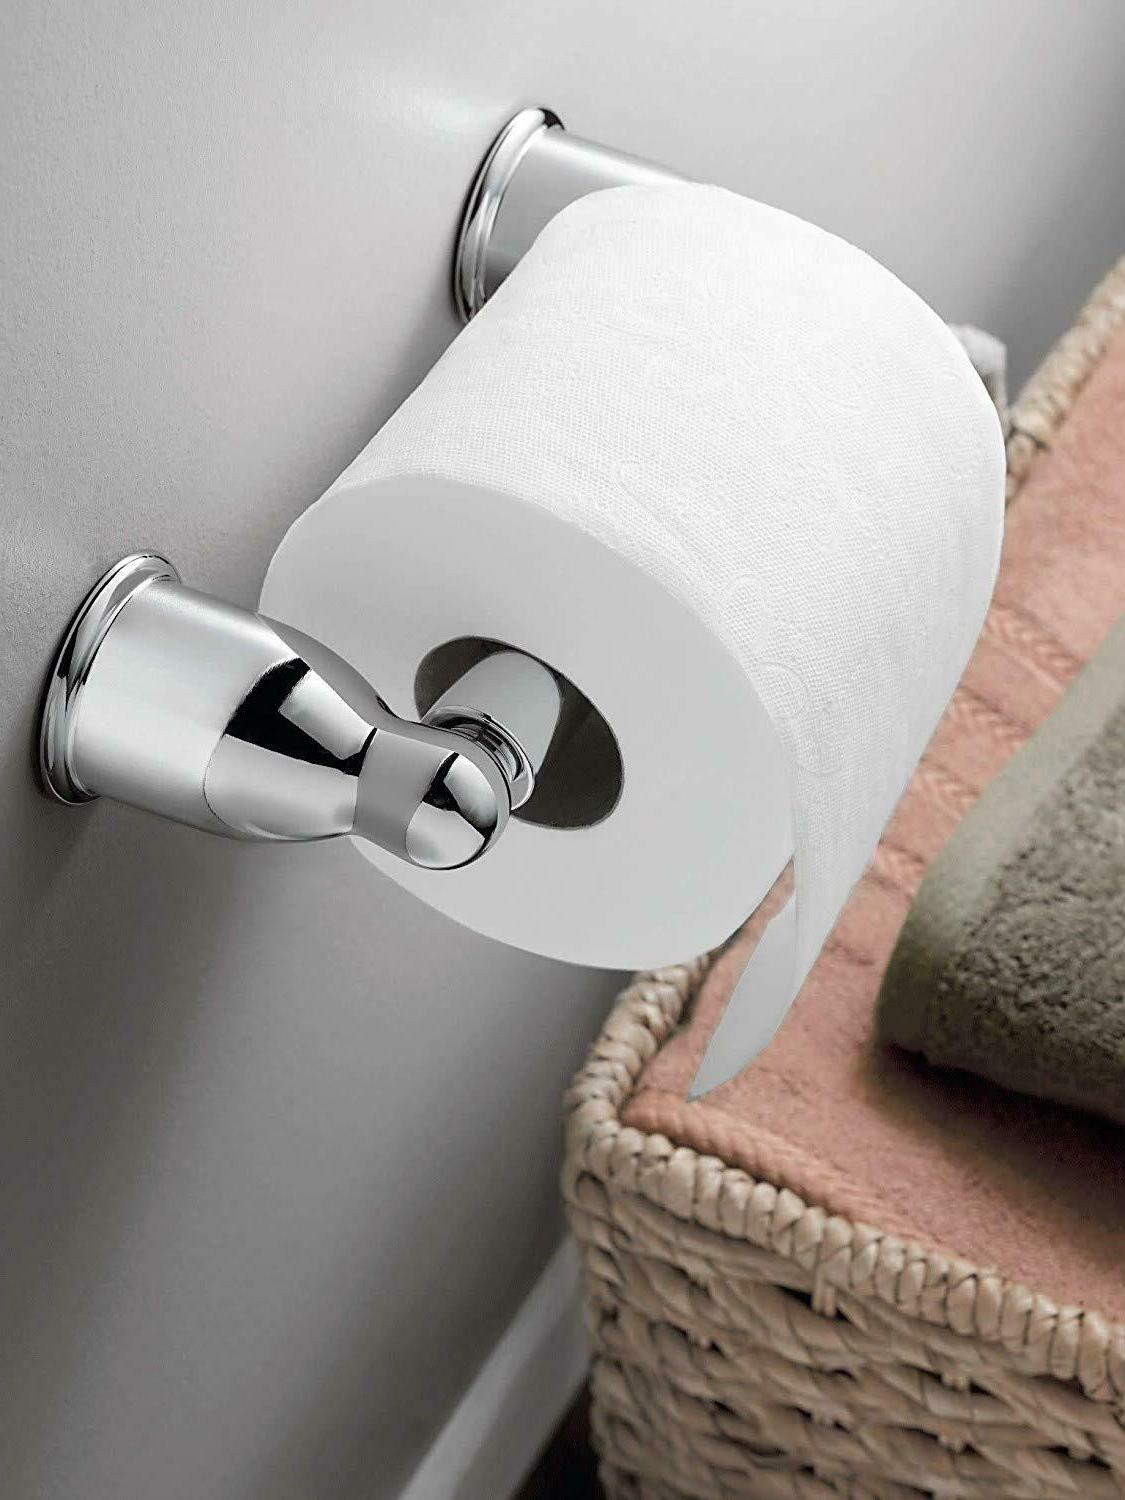 Satin Finish Toilet Paper Toilet Holder Corrosion